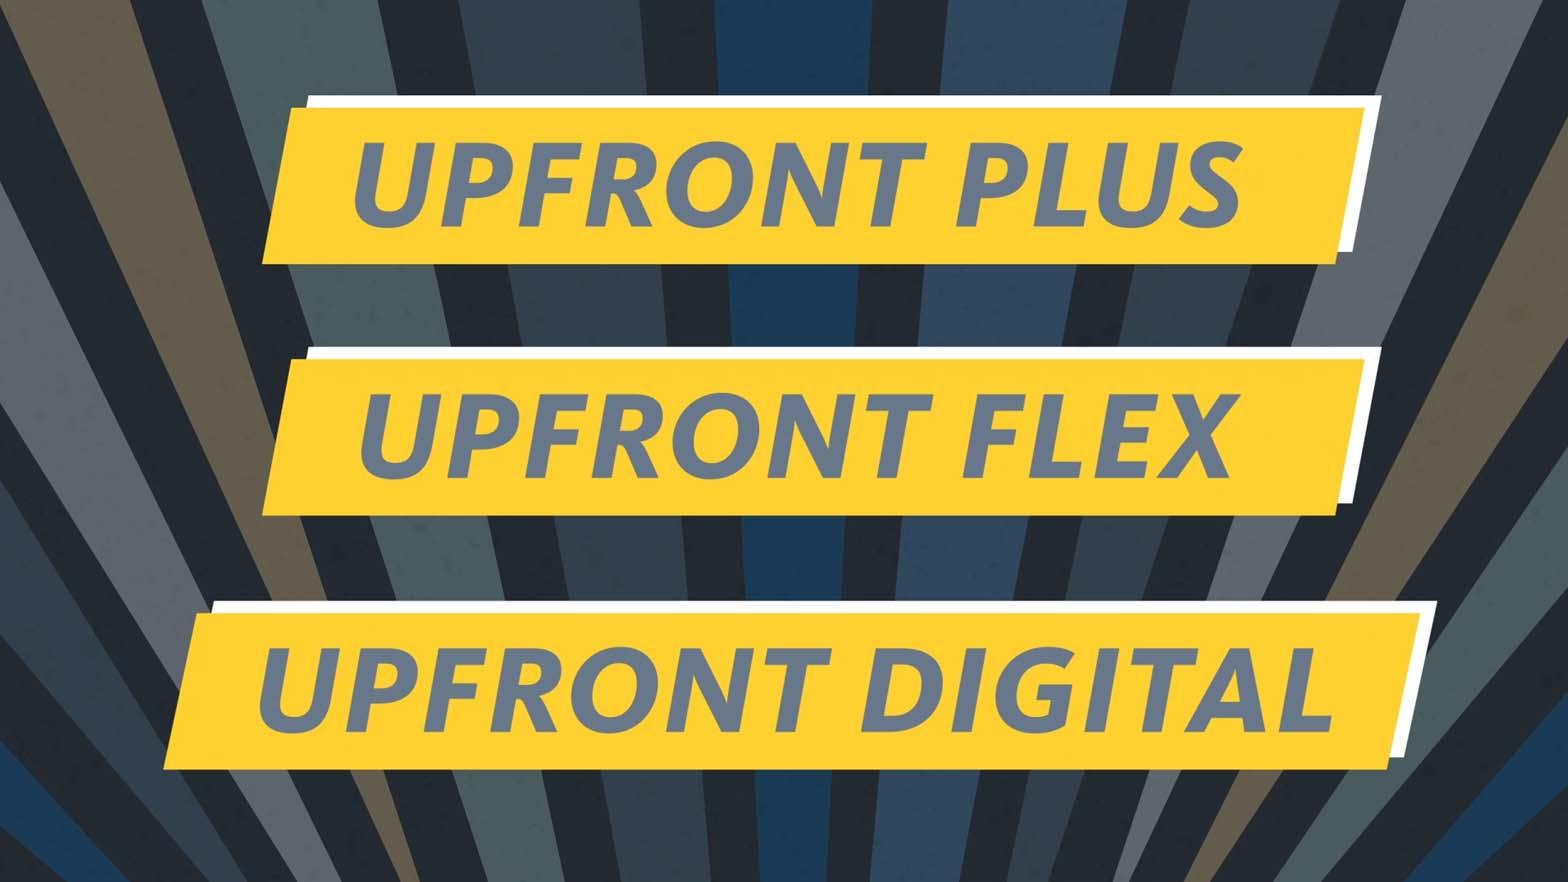 """Upfront Plus"" ""Upfront Flex"" and ""Upfront Digital"" on 3 separate rows in grey, each on a Yellow banner with a white drop shadow."